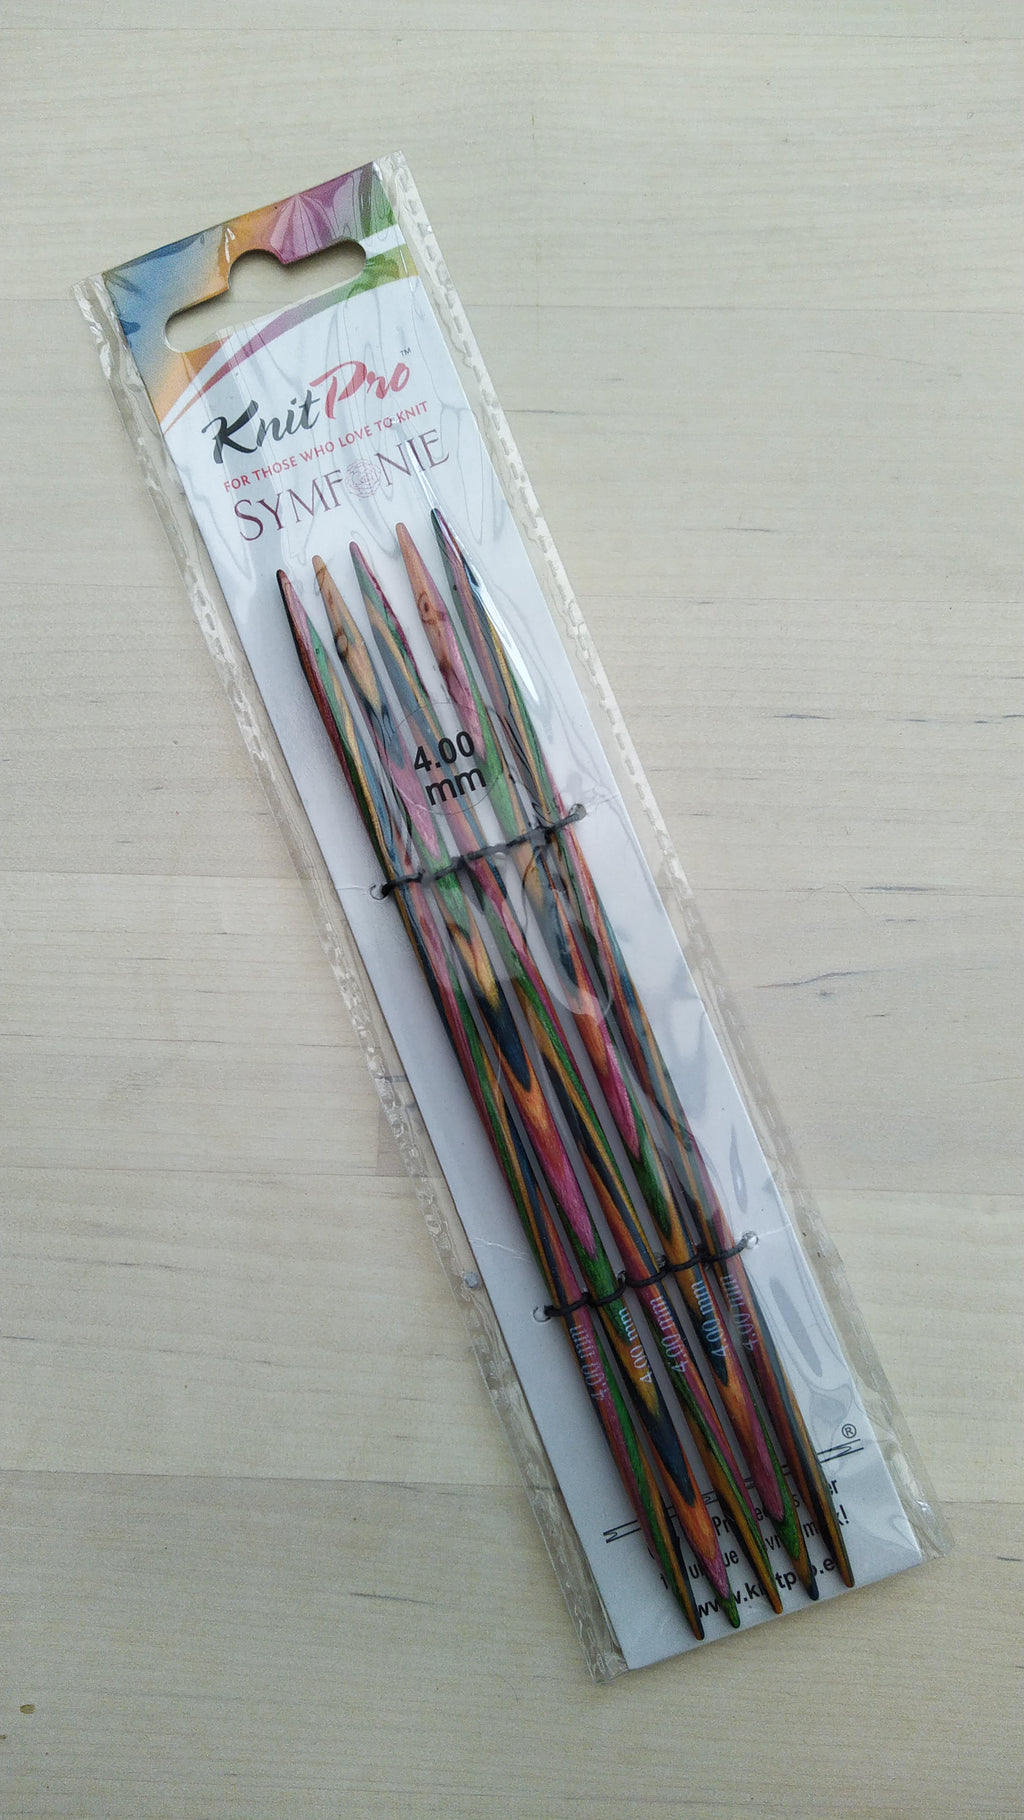 Knit Pro Double Poonted Needles